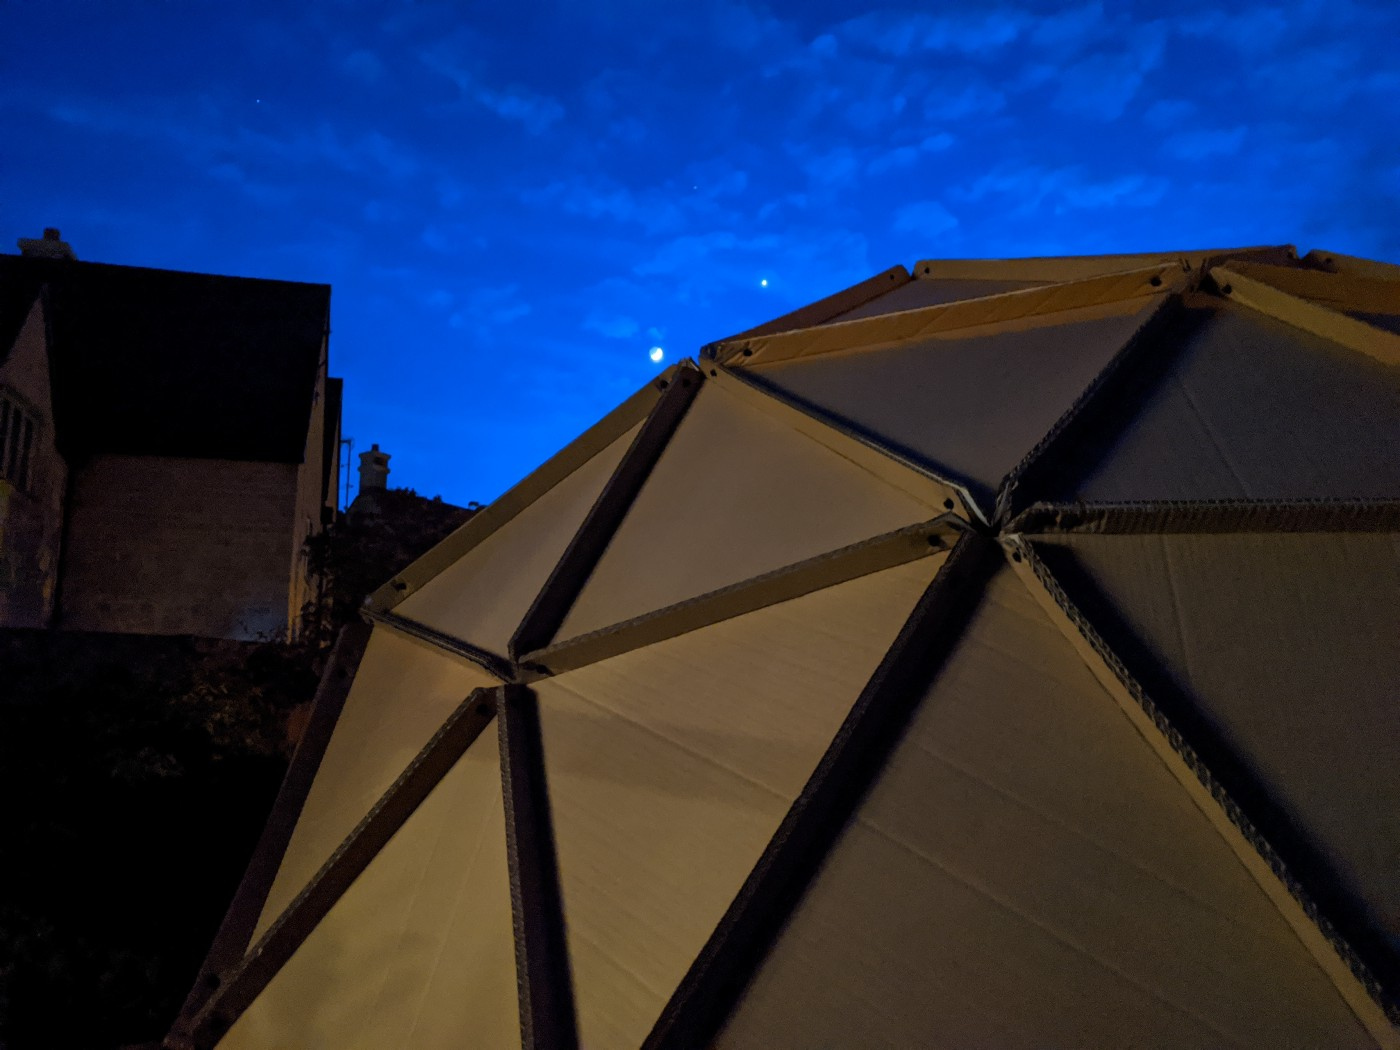 Cardboard dome with the moon and Venus visible in the sky